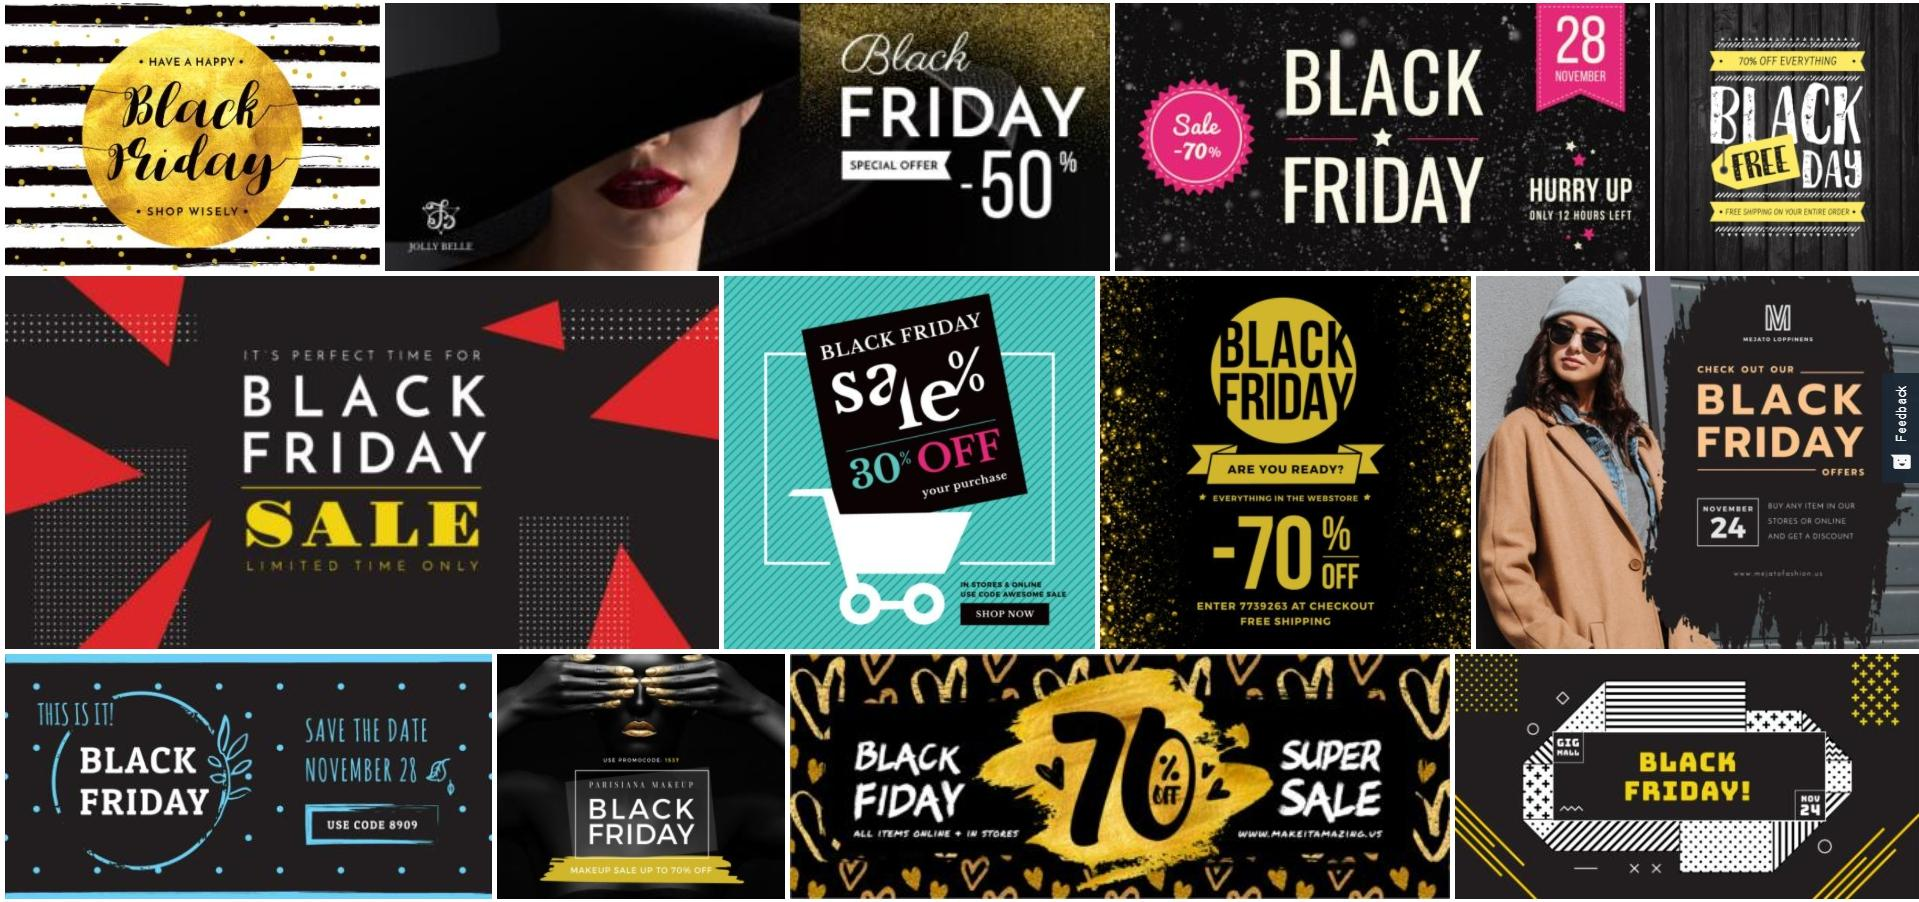 create black friday cyber monday campaigns diy